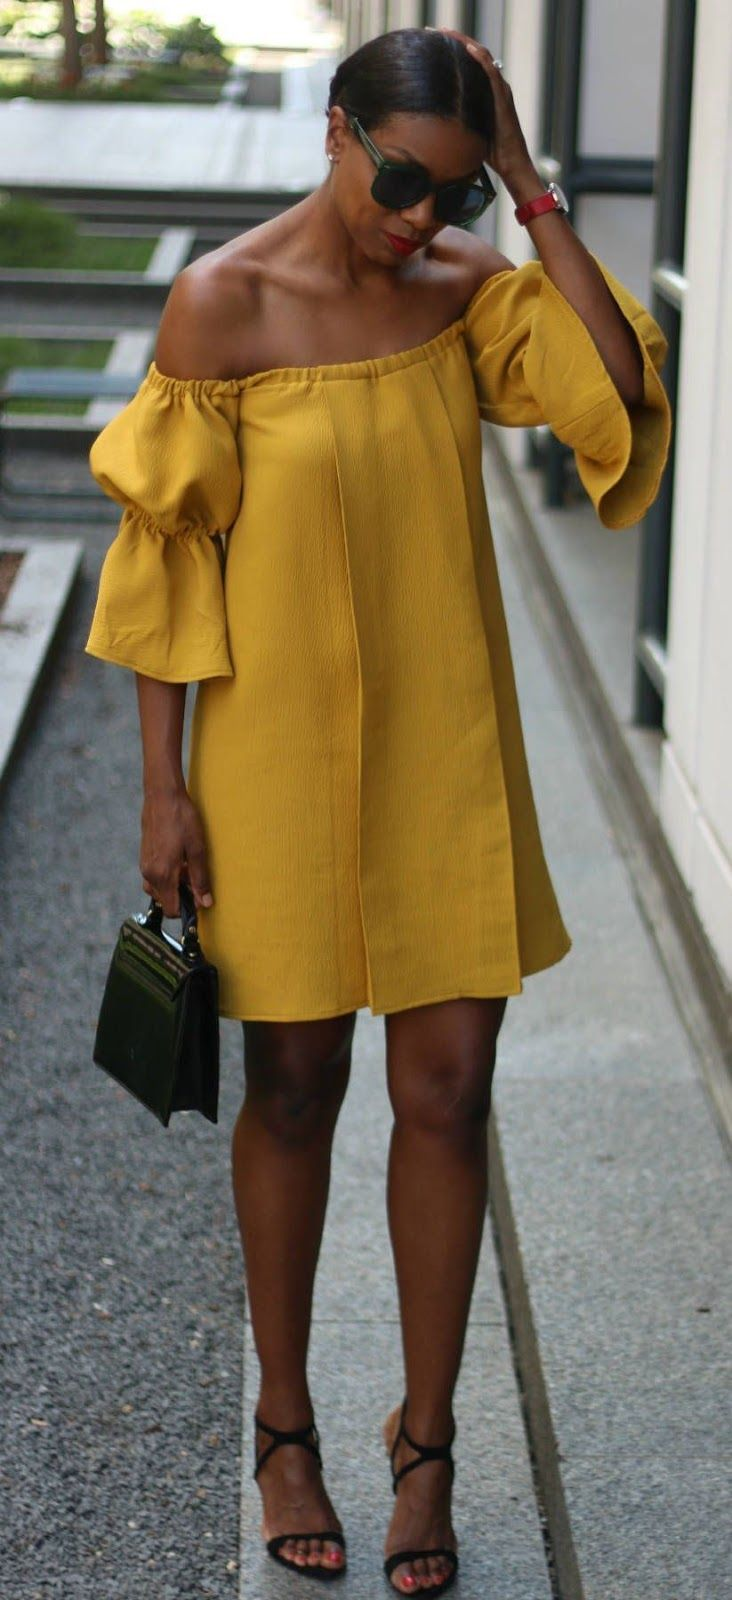 http://www.burdastyle.com/projects/off-the-shoulder-exaggerated-sleeve?image=430520